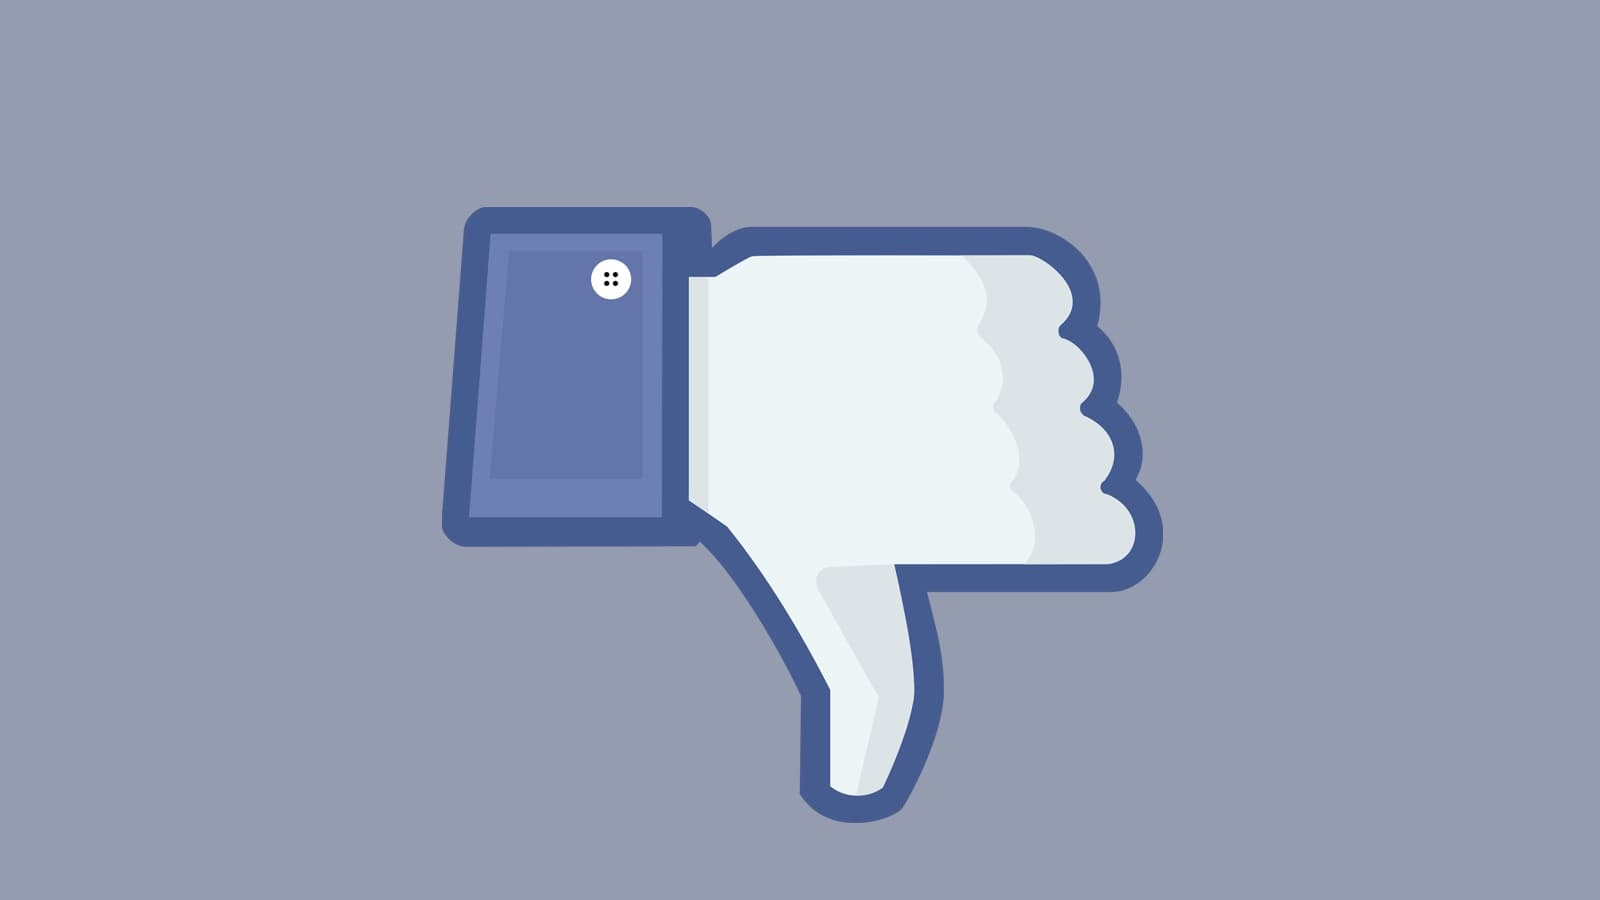 thumbs down icon from facebook